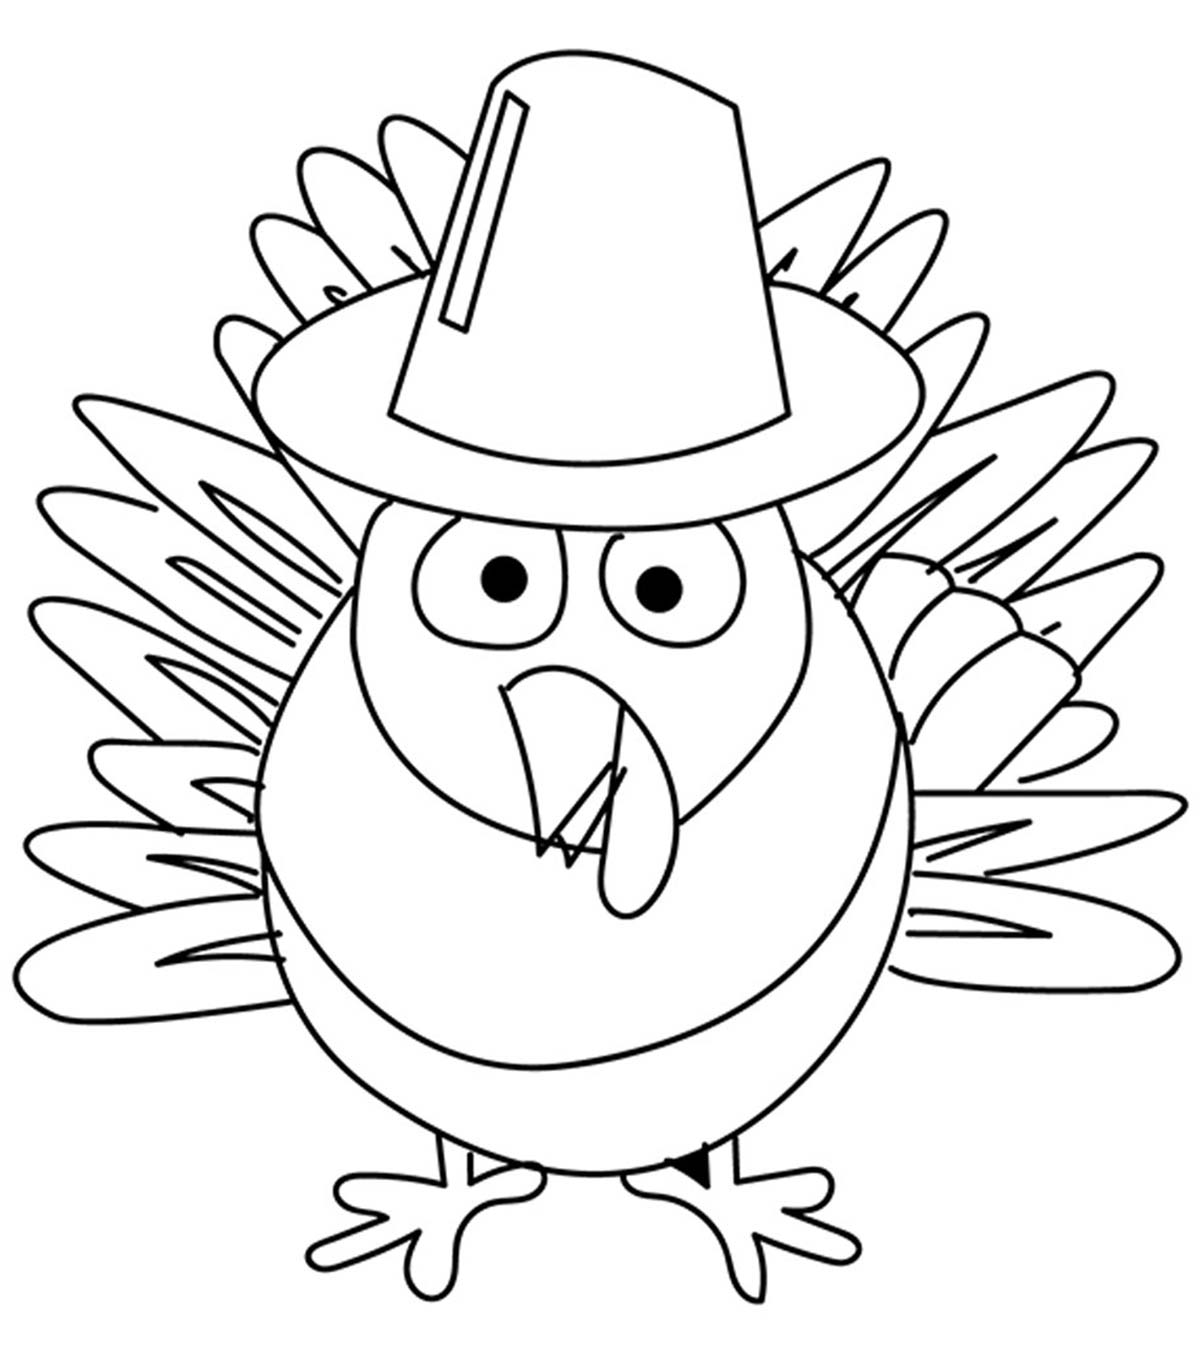 - Top 10 Free Printable Thanksgiving Turkey Coloring Pages Online